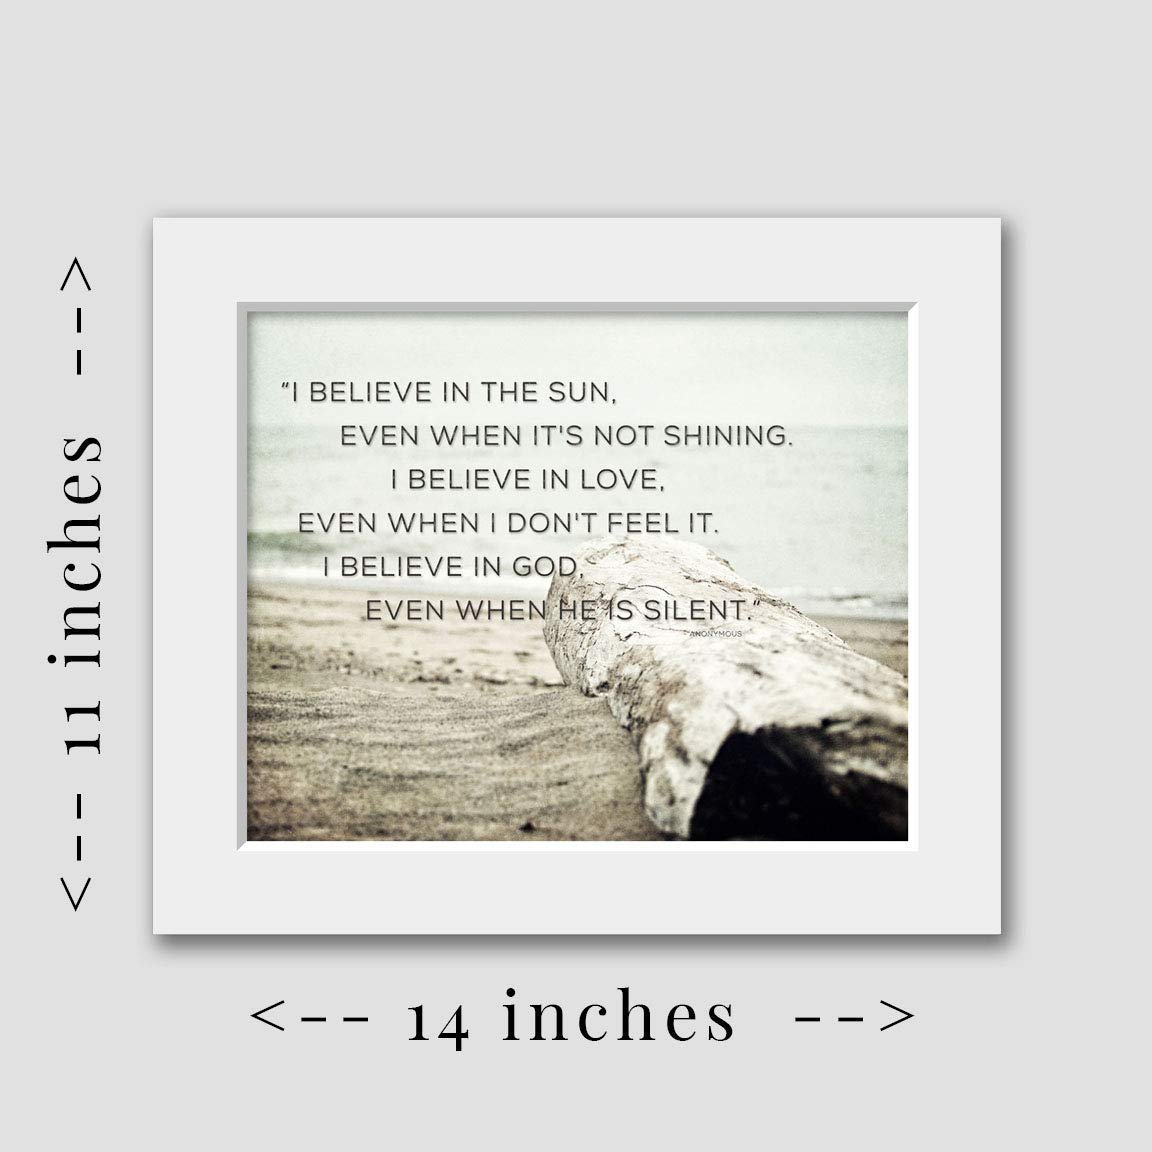 Matted 8x10 Print fits 11x14 frame Ready to Frame or Gift. Inspirational Wall Art I Believe in the Sun Motivational Decor Beach Decor Religious Quotation